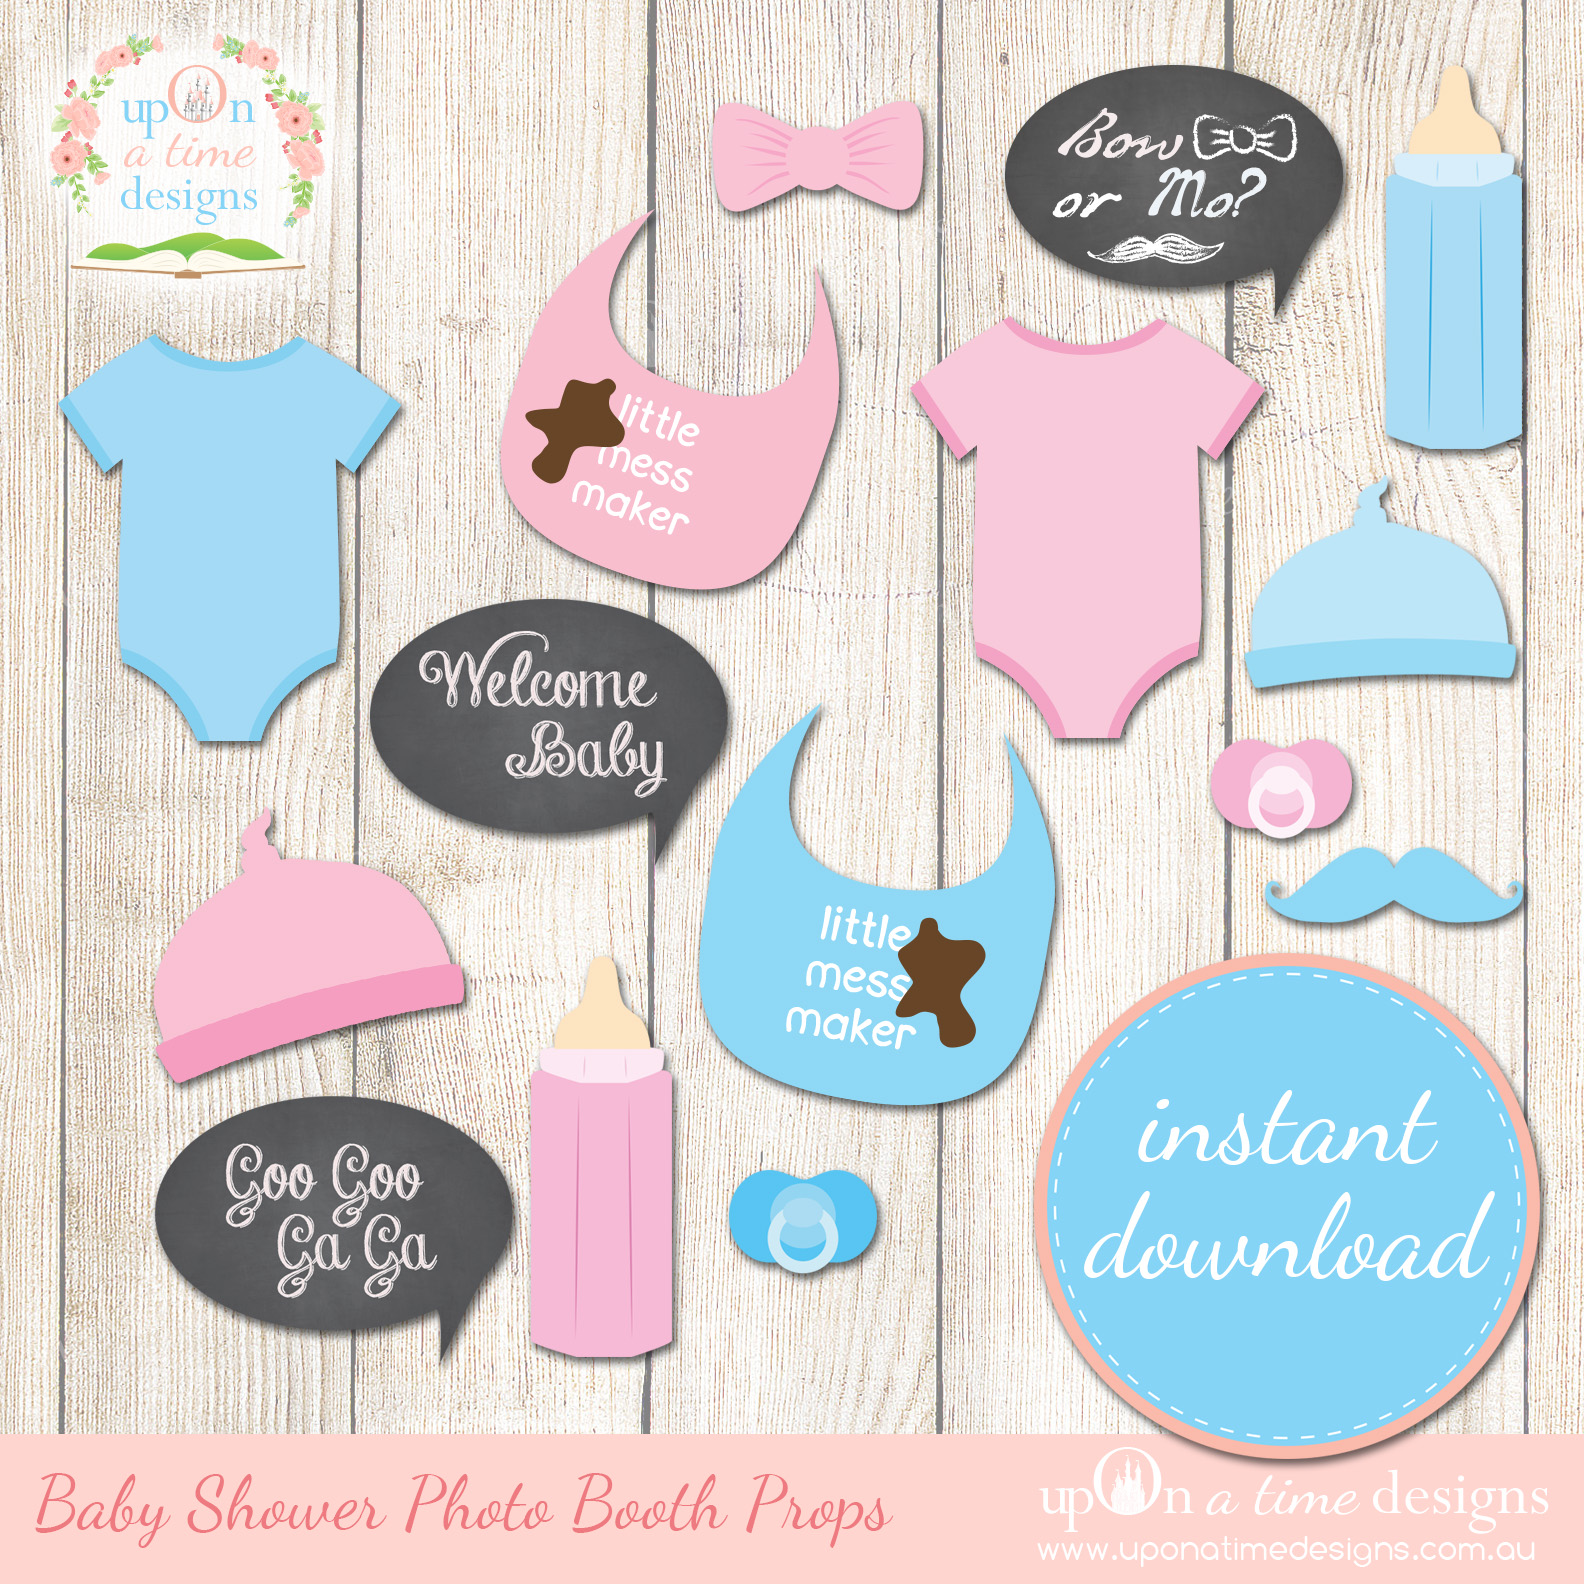 8 Images of Free Printable Baby Shower Props